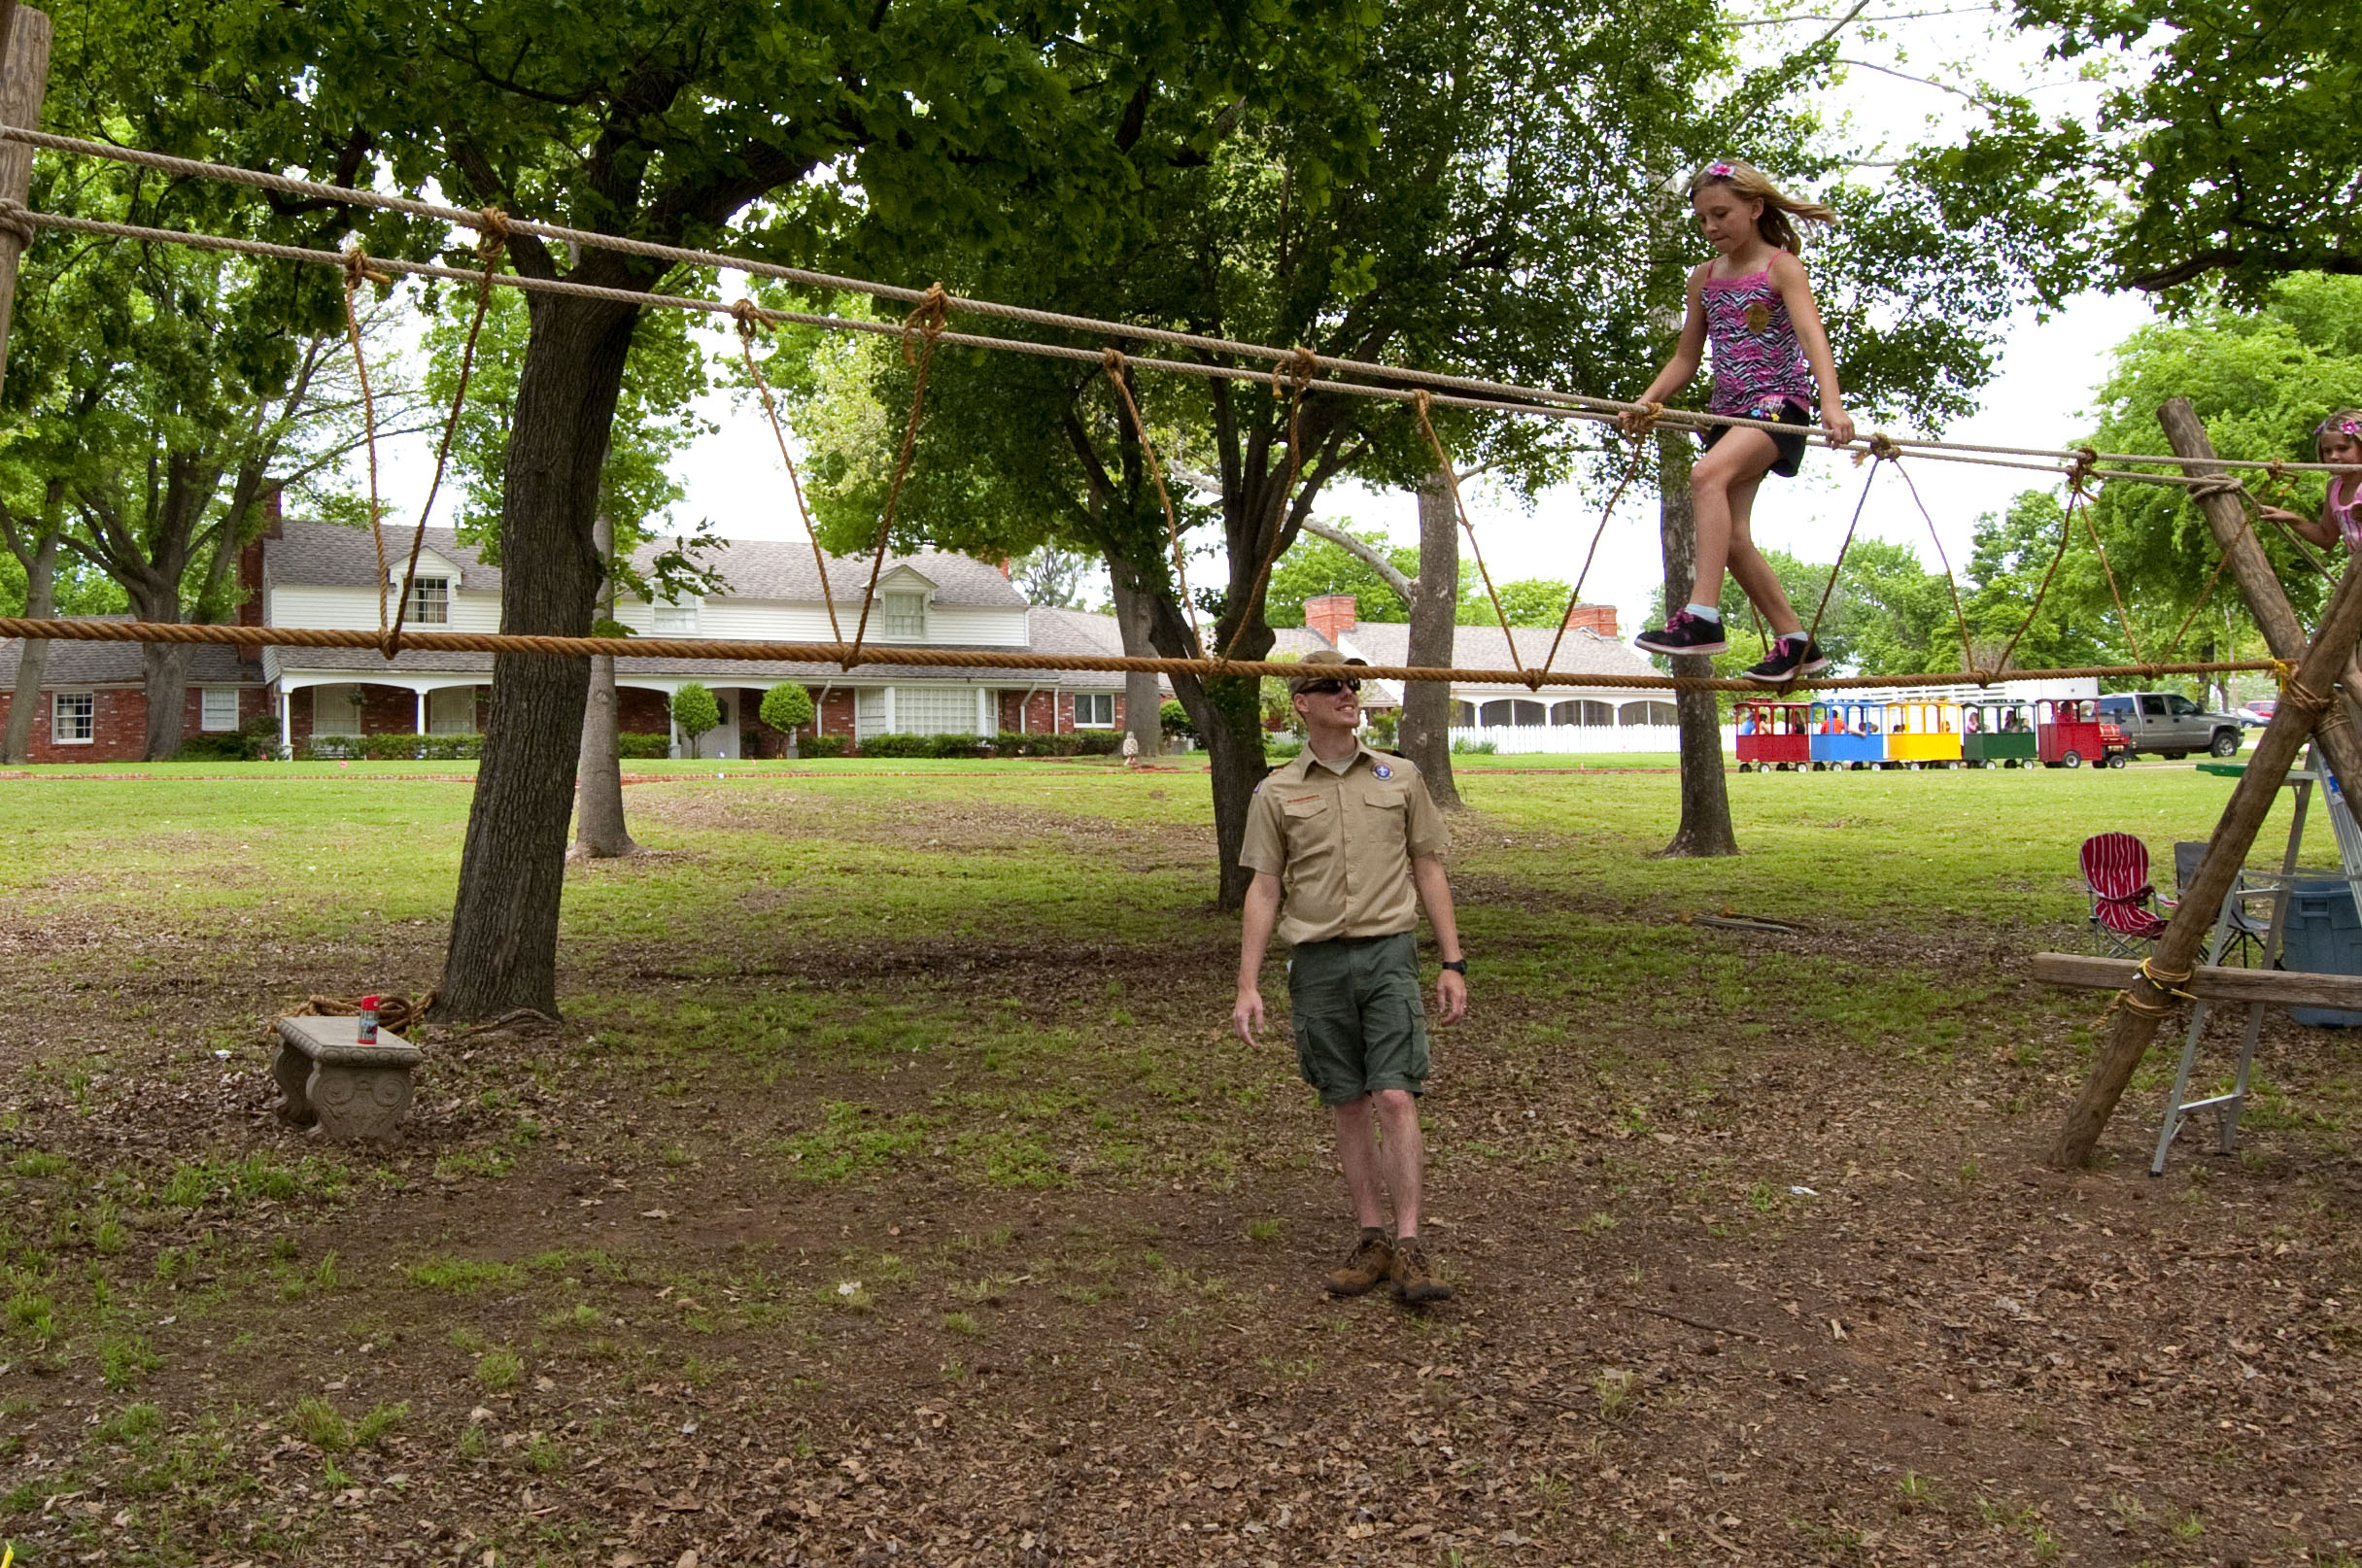 Child on the ropewalk at Heritage Day event.